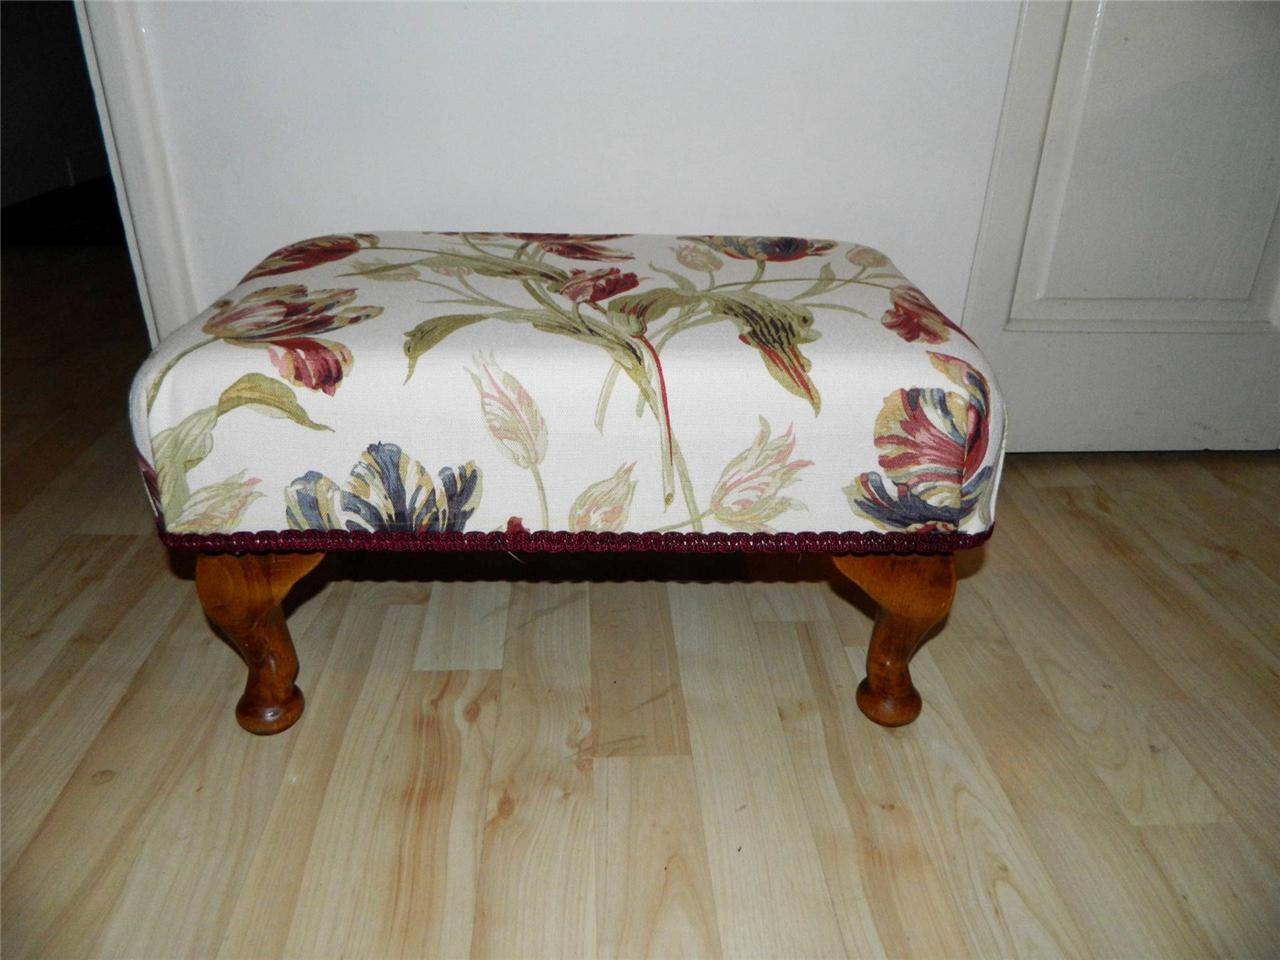 Klein Voetenbankje Small Footstool In Laura Ashley Gosford Cranberry Red